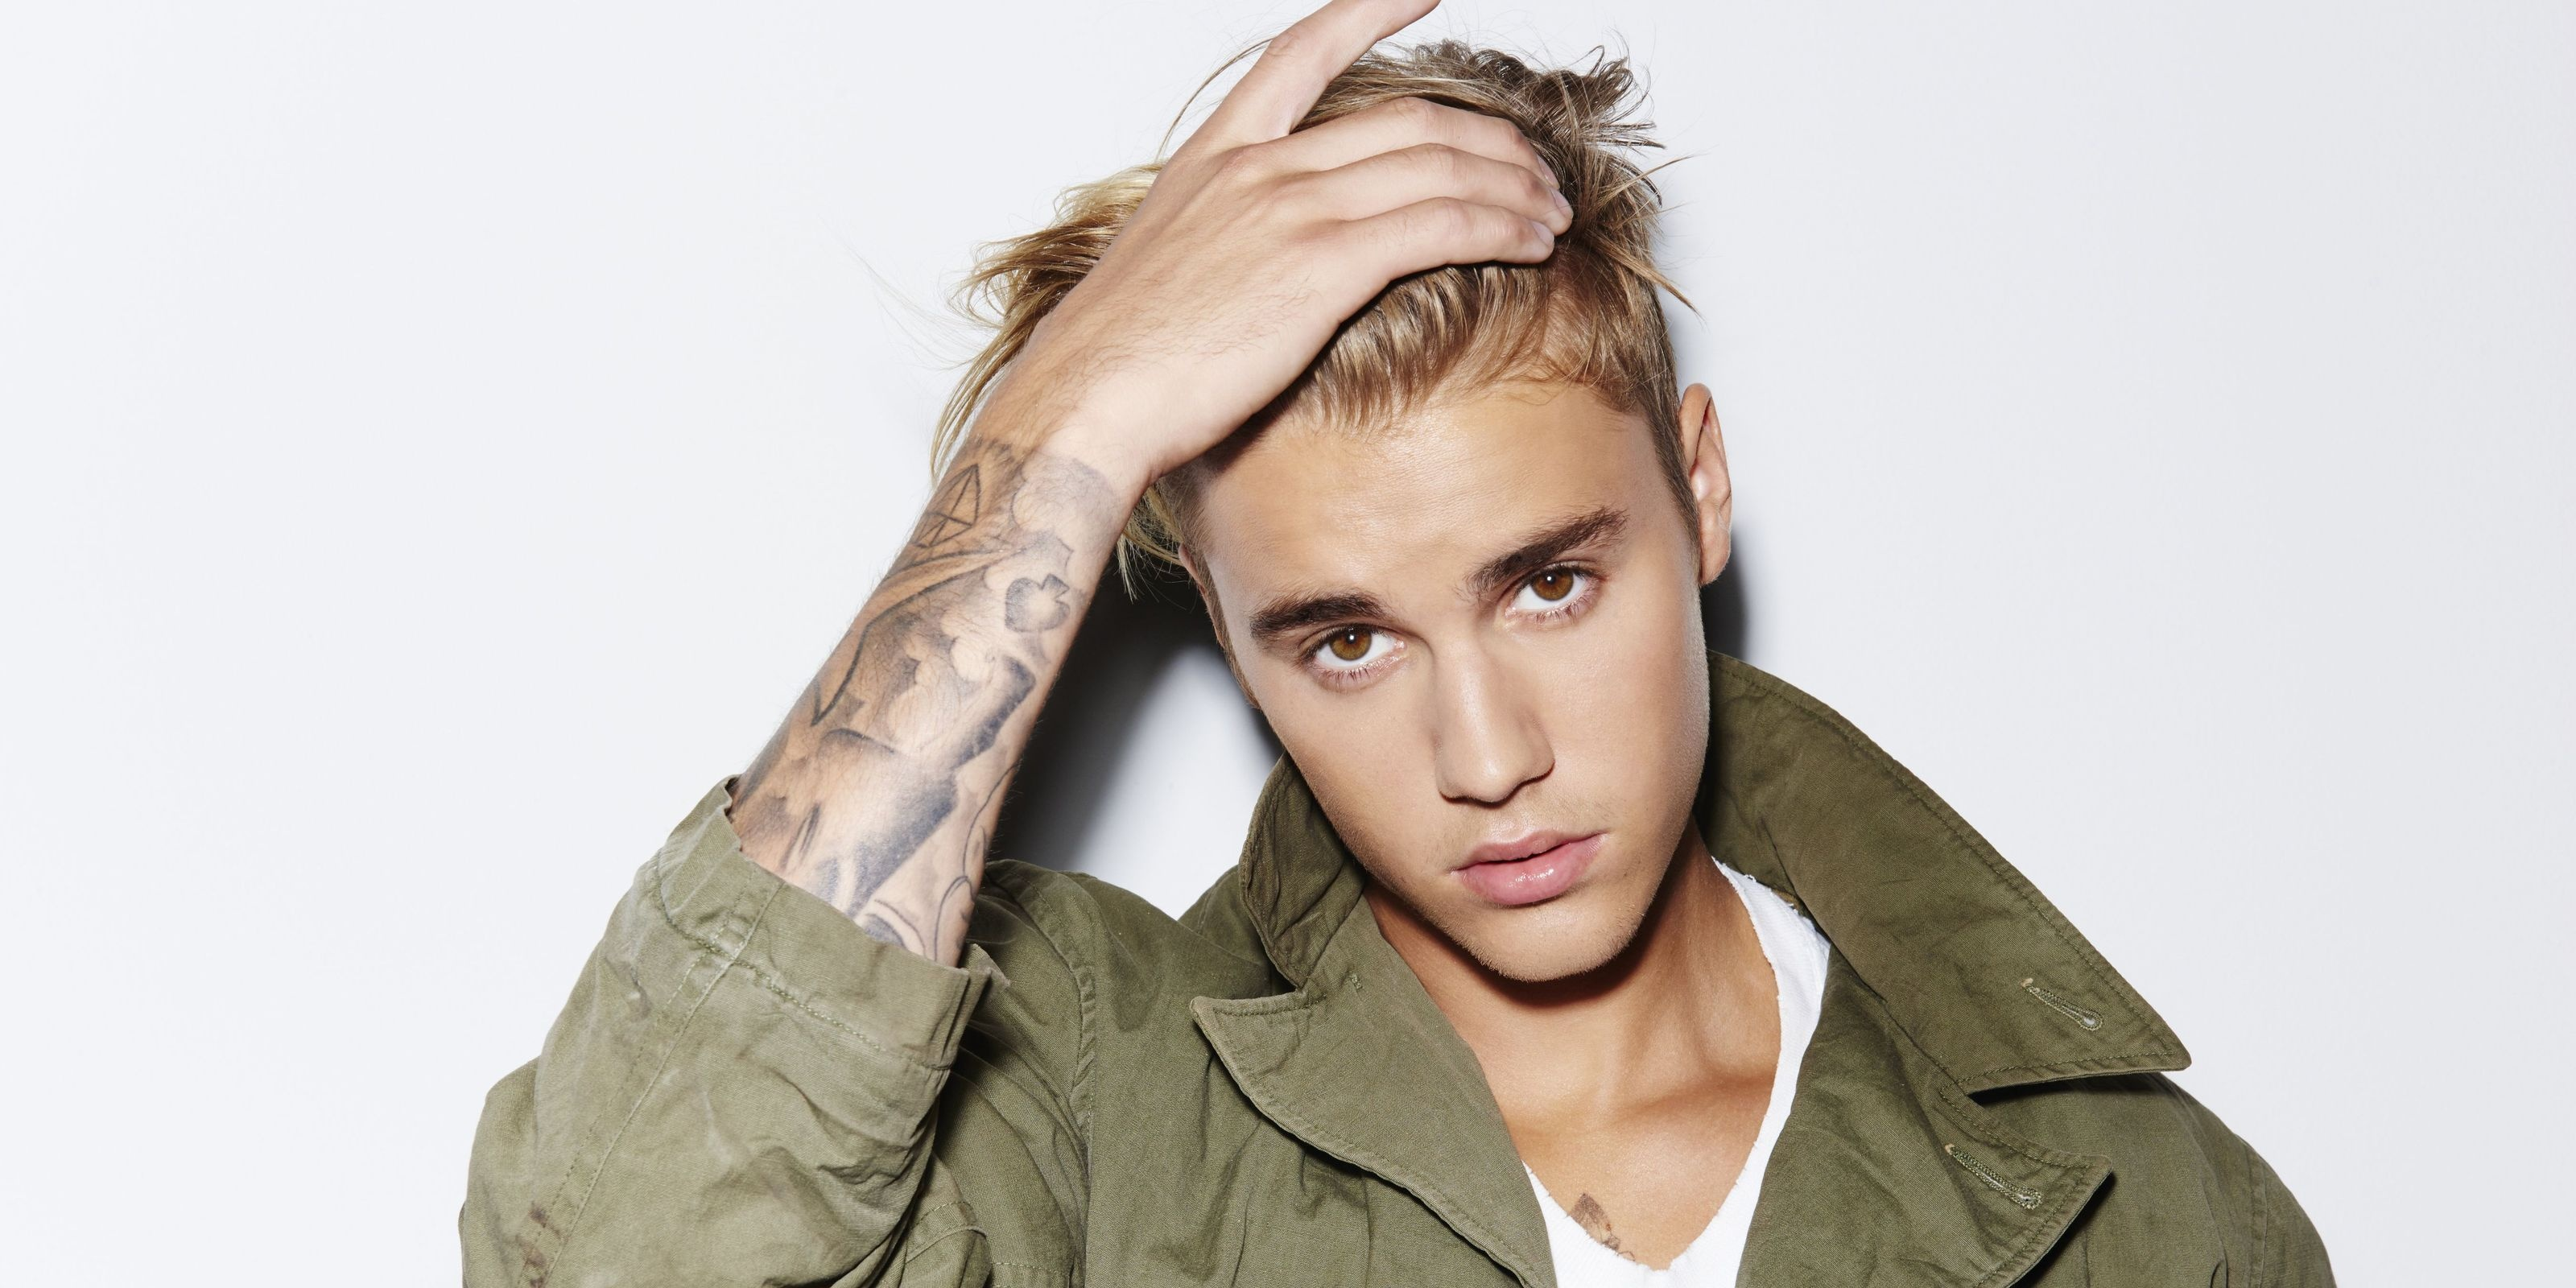 Justin Bieber announces hiatus from music